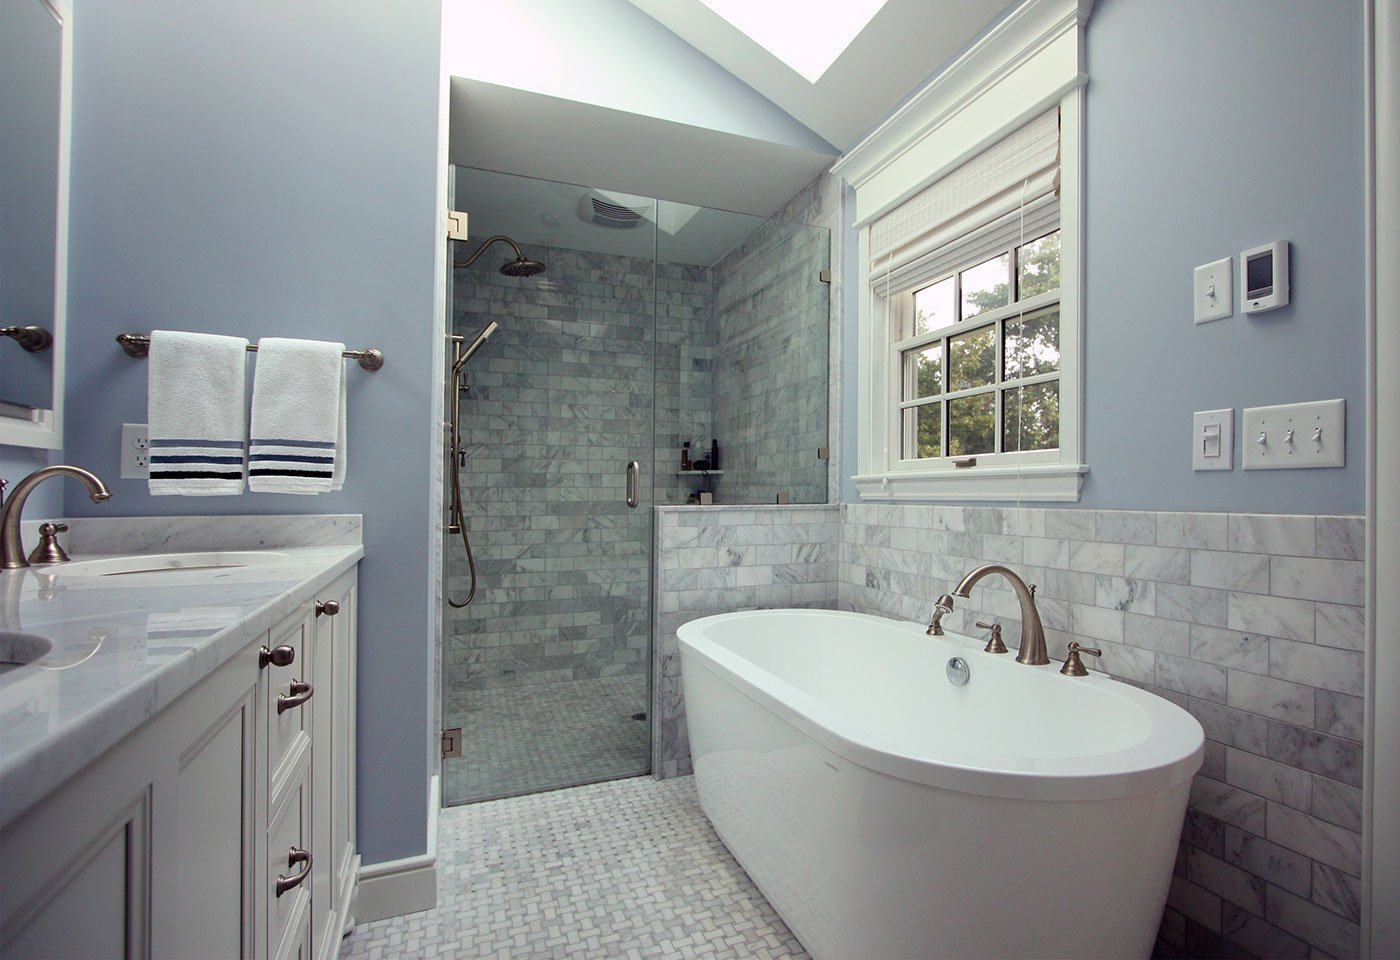 Bathroom remodel renovation construction project by in house design build firm in RI